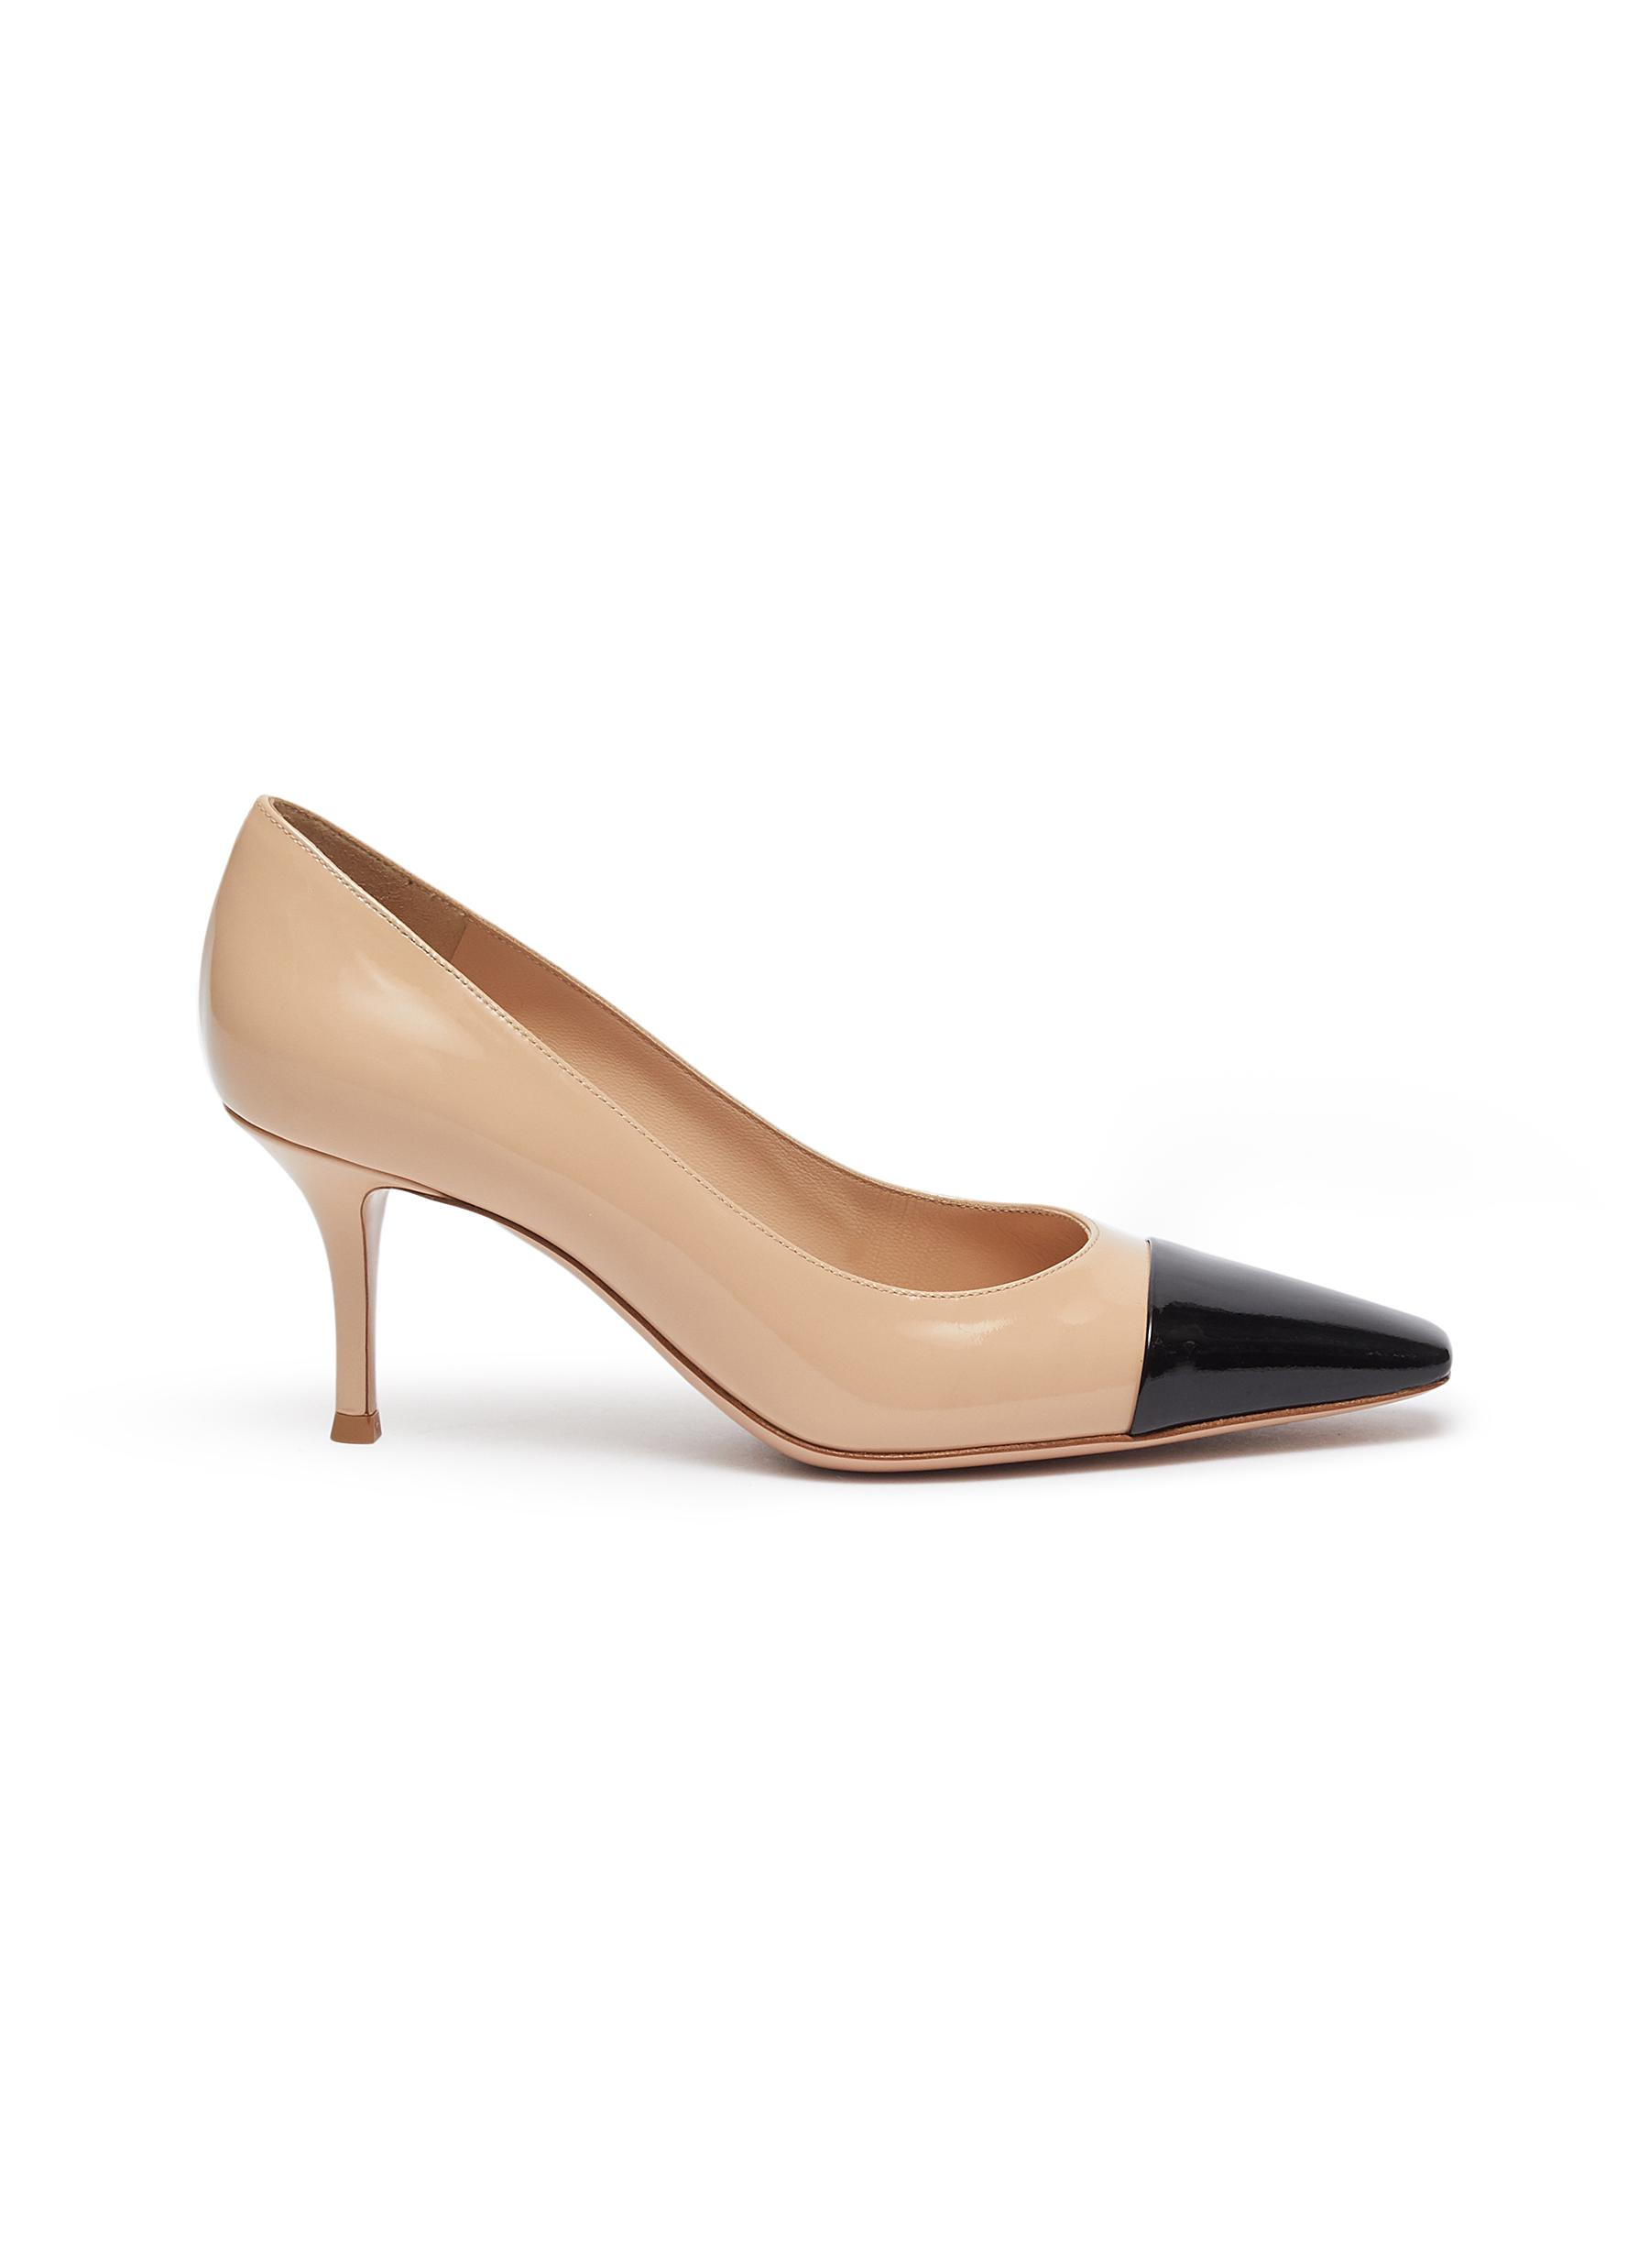 Lucy contrast toecap patent leather pumps by Gianvito Rossi